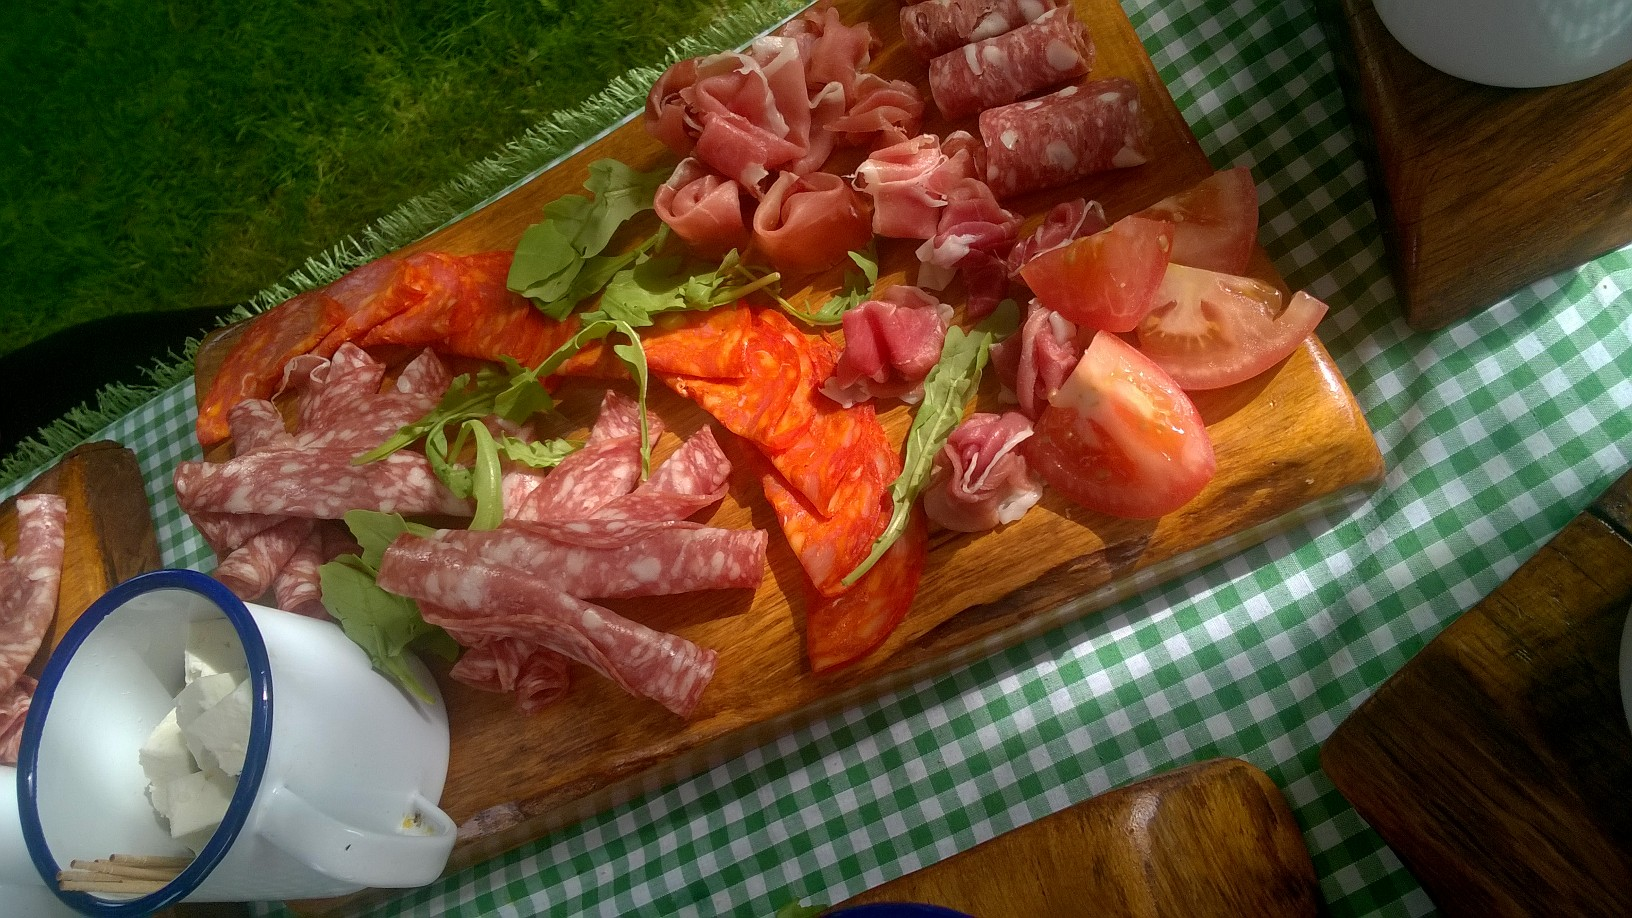 Hog Roast Italian Sharing Board